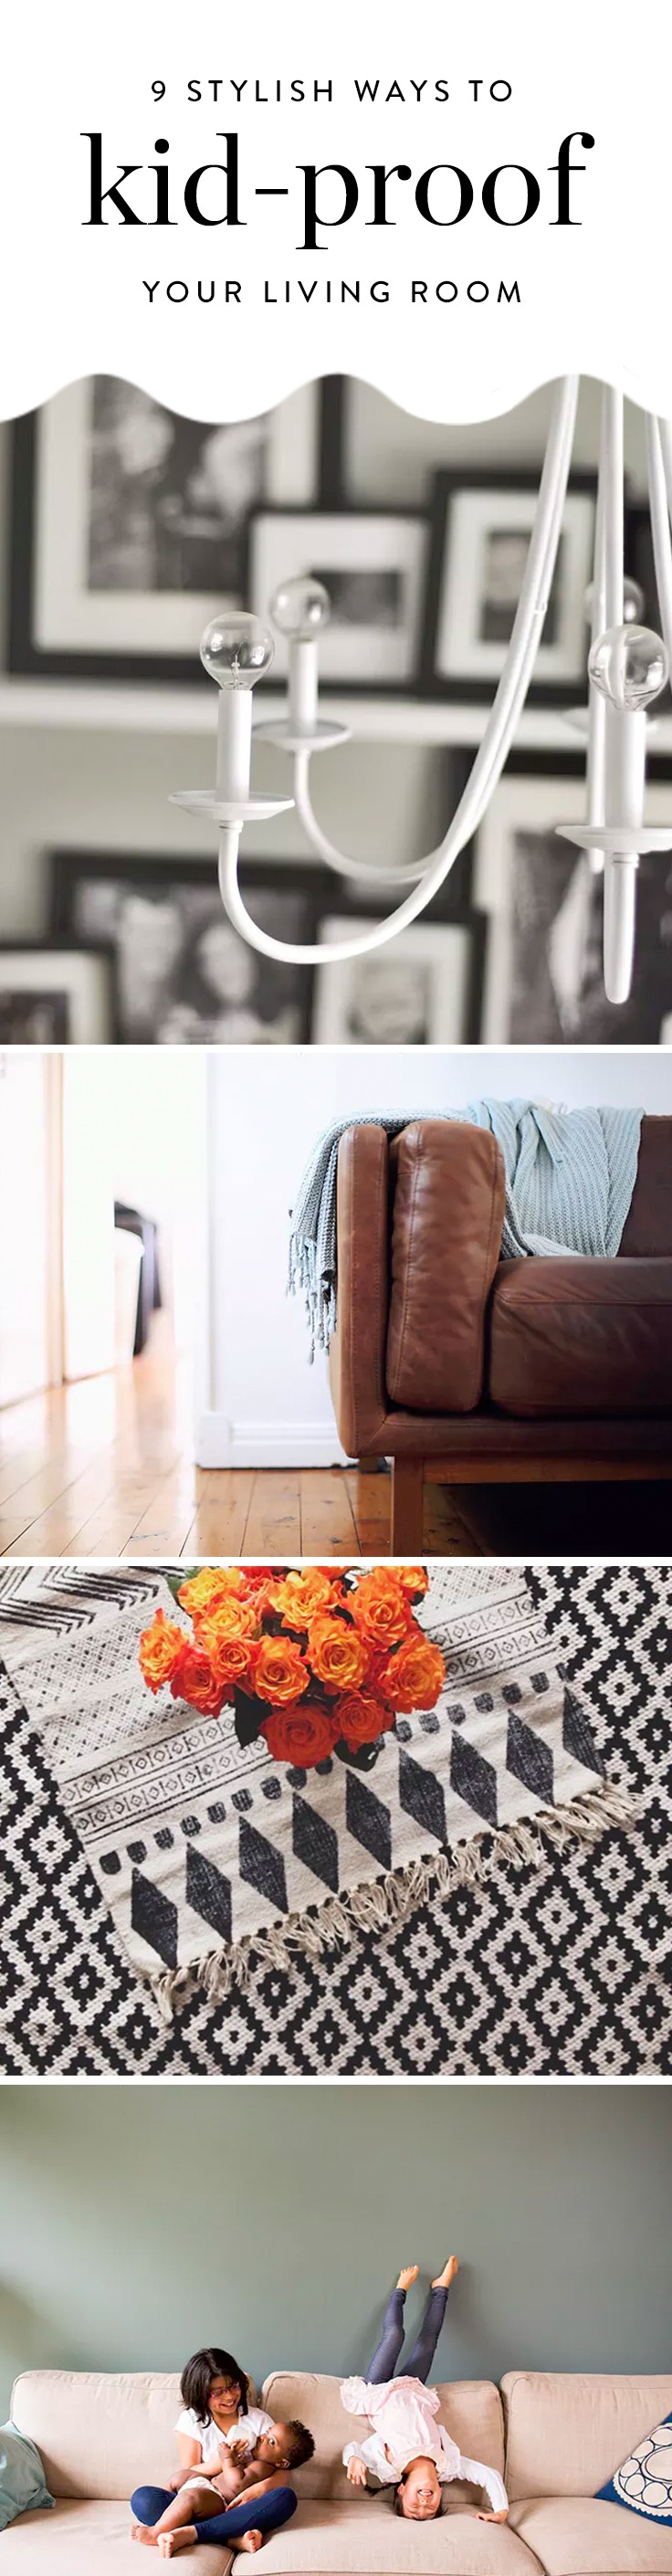 With some chic safety minded tweaks your common room can become nearly immune to their adorable attacks discover these 9 kid friendly decor ideas youll